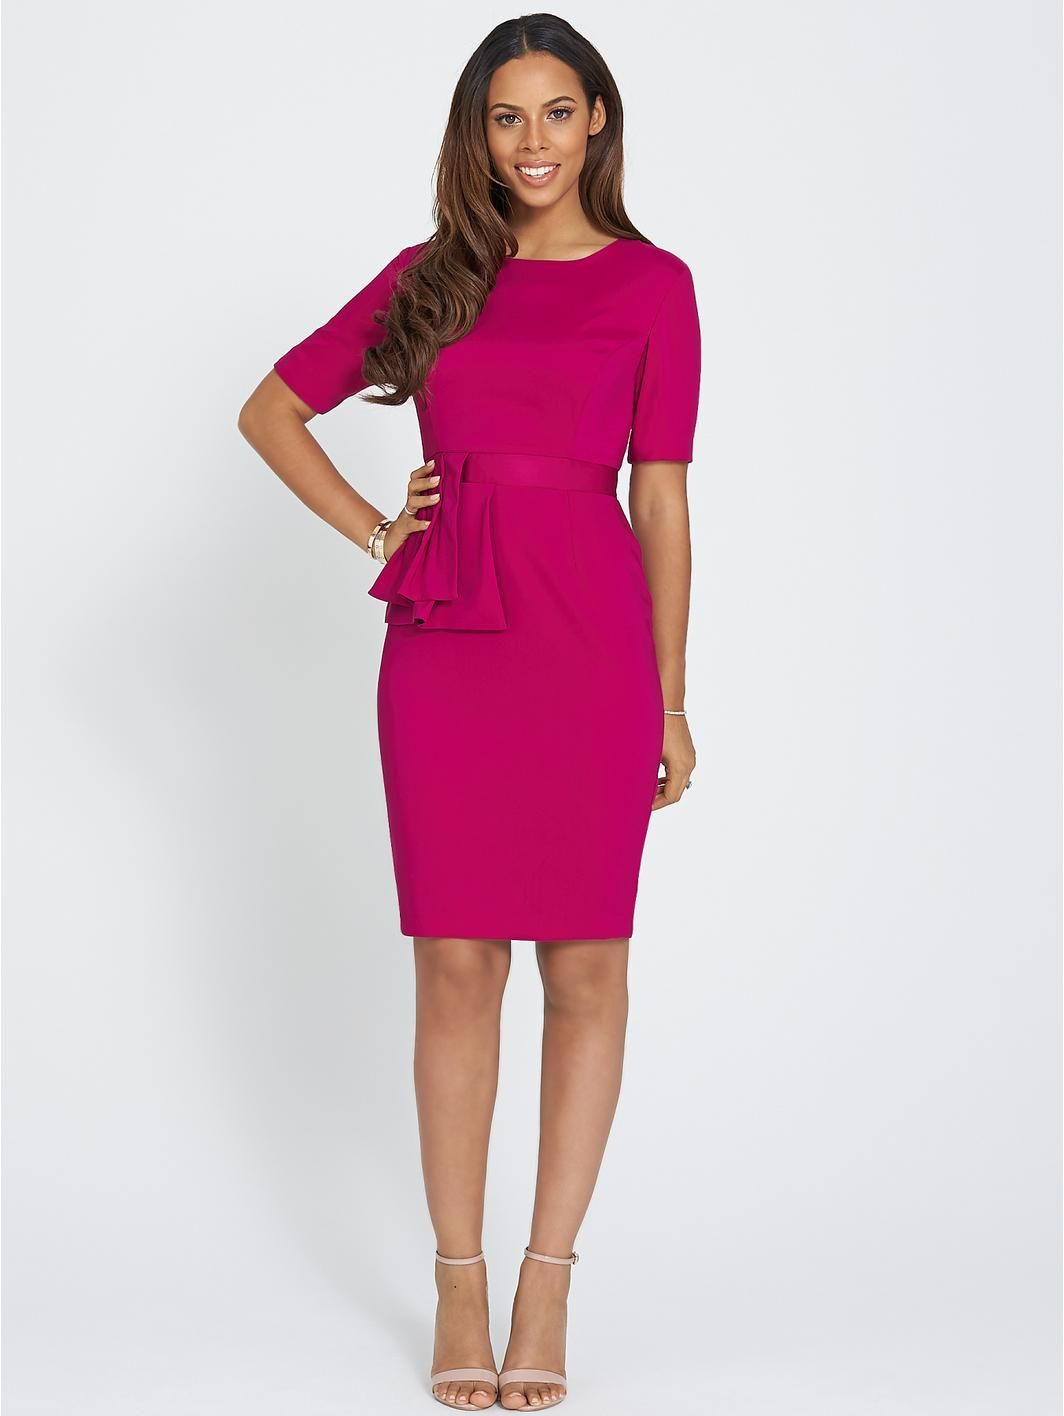 Pleated Peplum Dress, http://www.very.co.uk/rochelle-humes-pleated ...